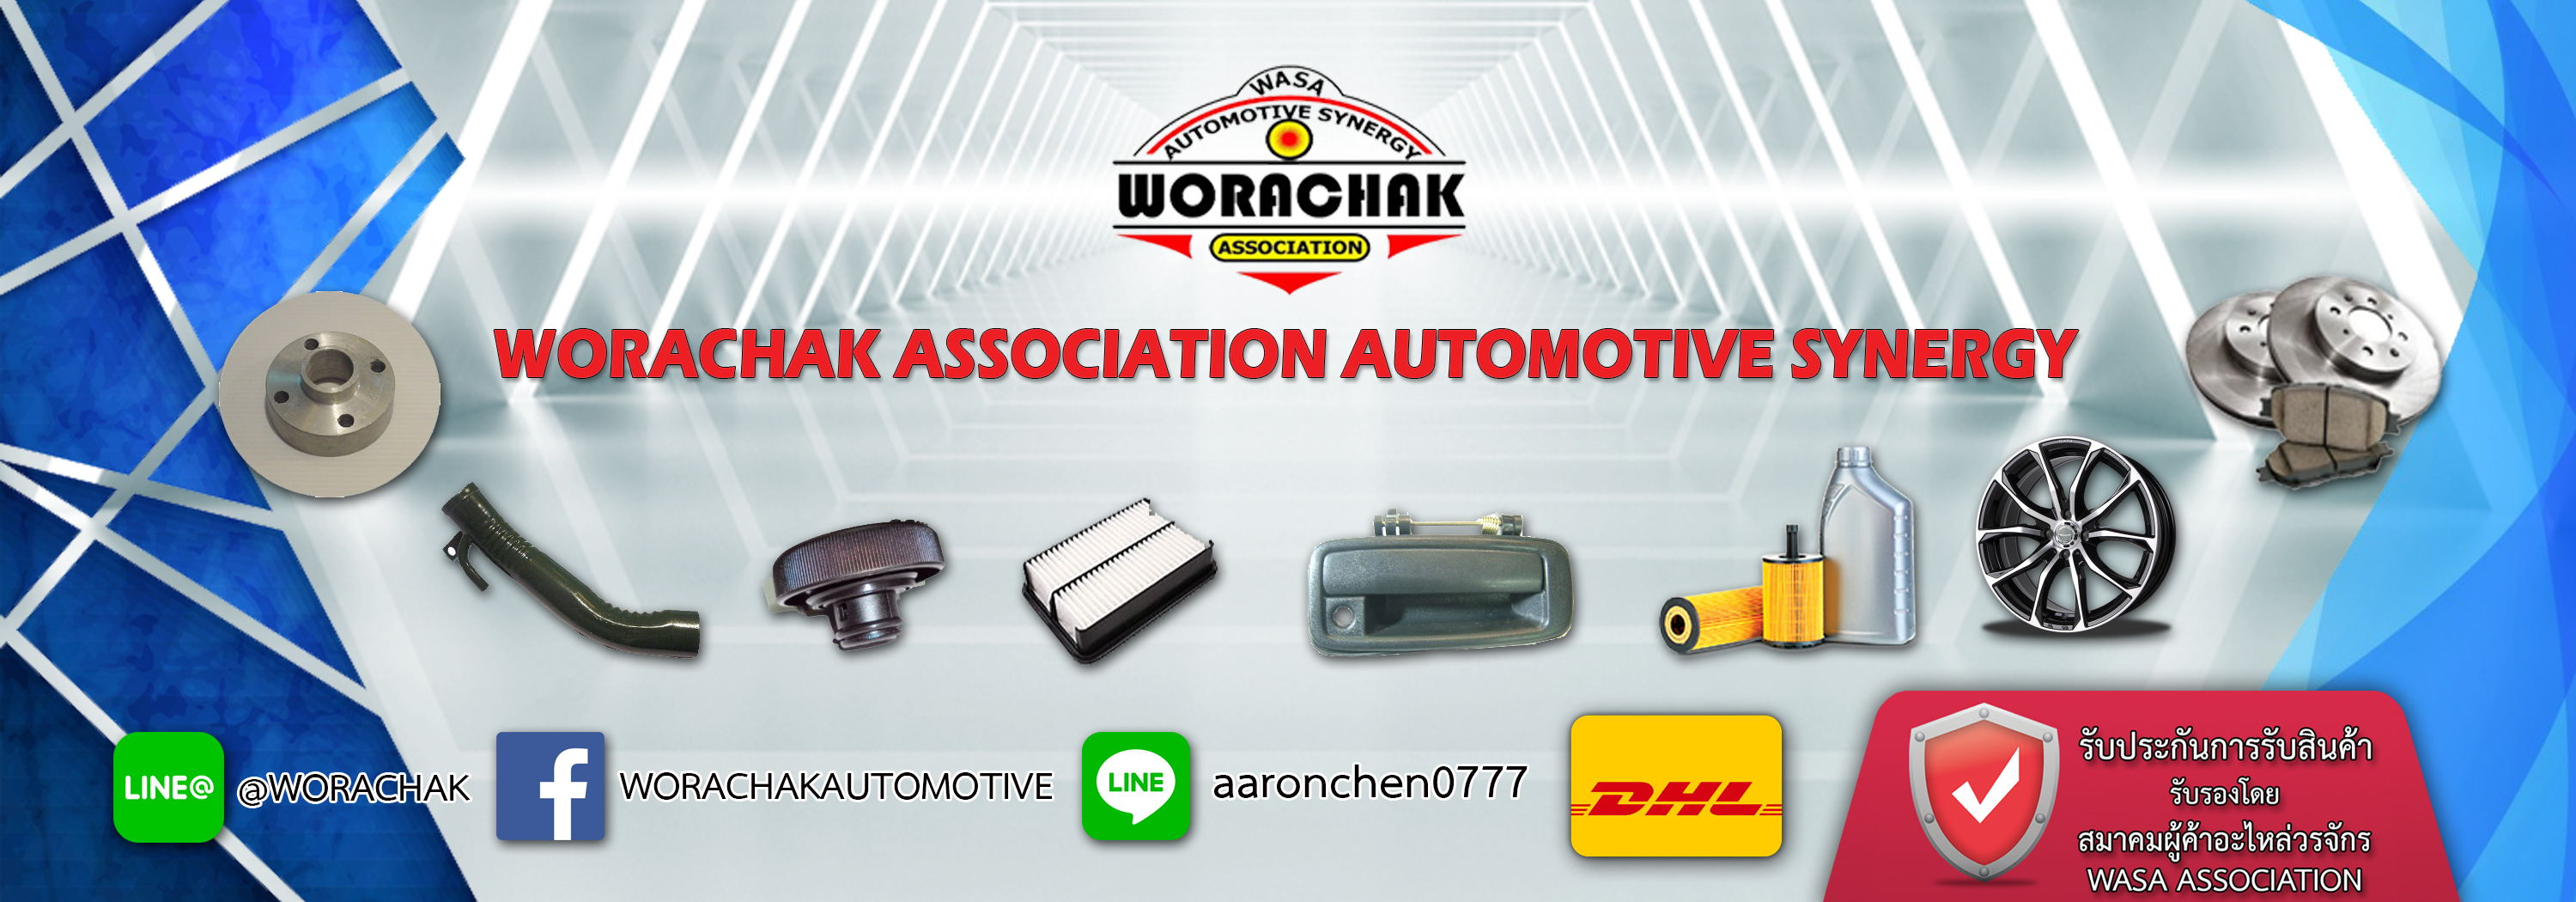 Worachak Automotive Synergy Association(WASA)